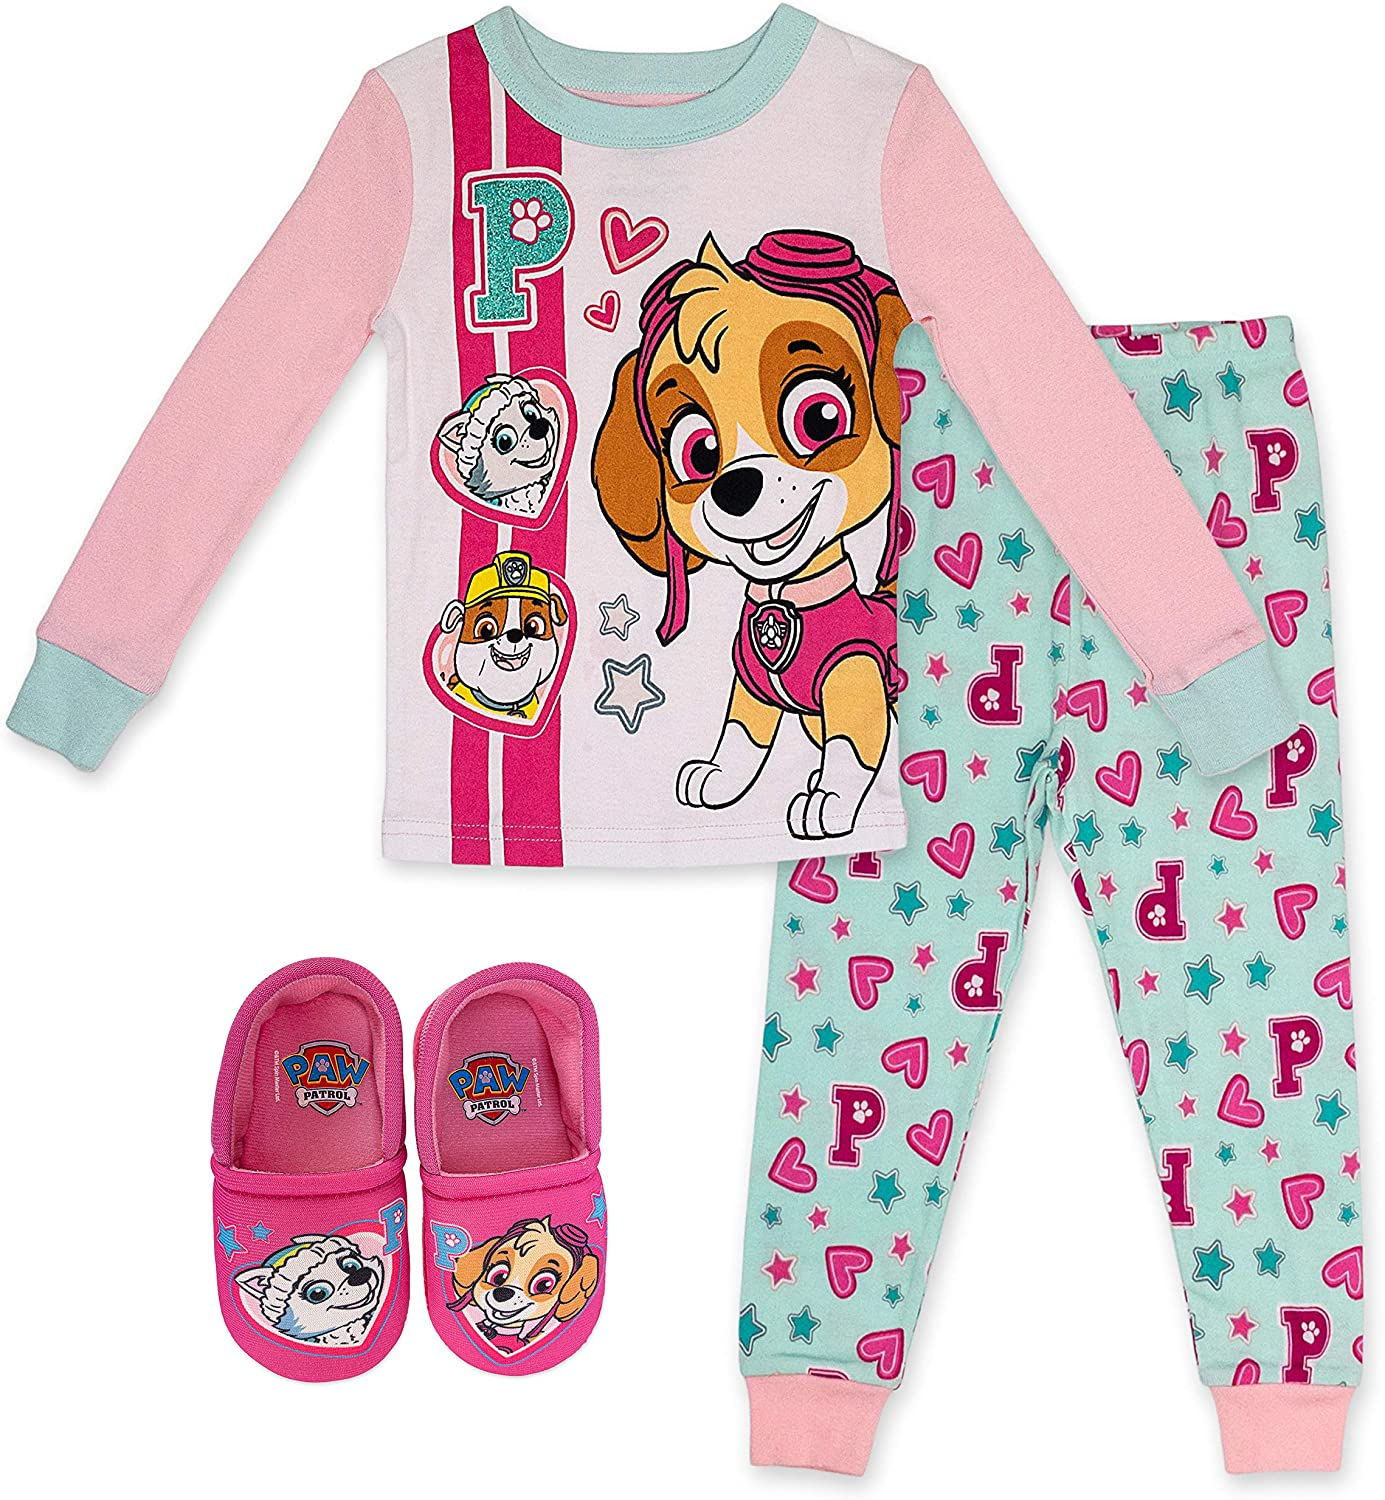 Paw Patrol Girl's Pajama and Slipper Set,2 Piece PJ Set with Slippers Bundle,Pink,100% Cotton,Toddler Girl's Size 2T to 5T